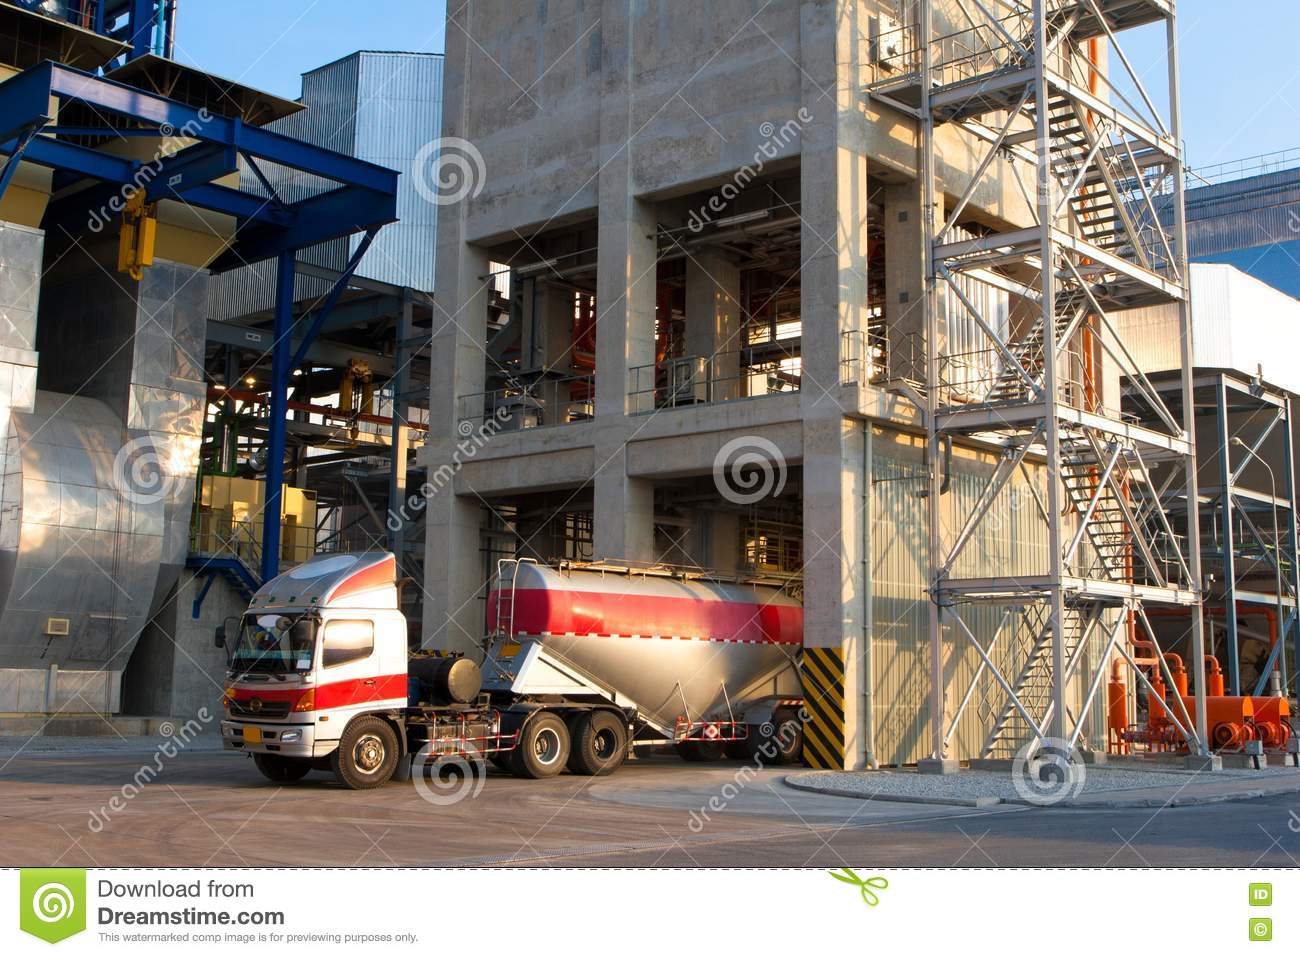 Cement Loading Plant : Mixer concrete loading tower plant and truck royalty free